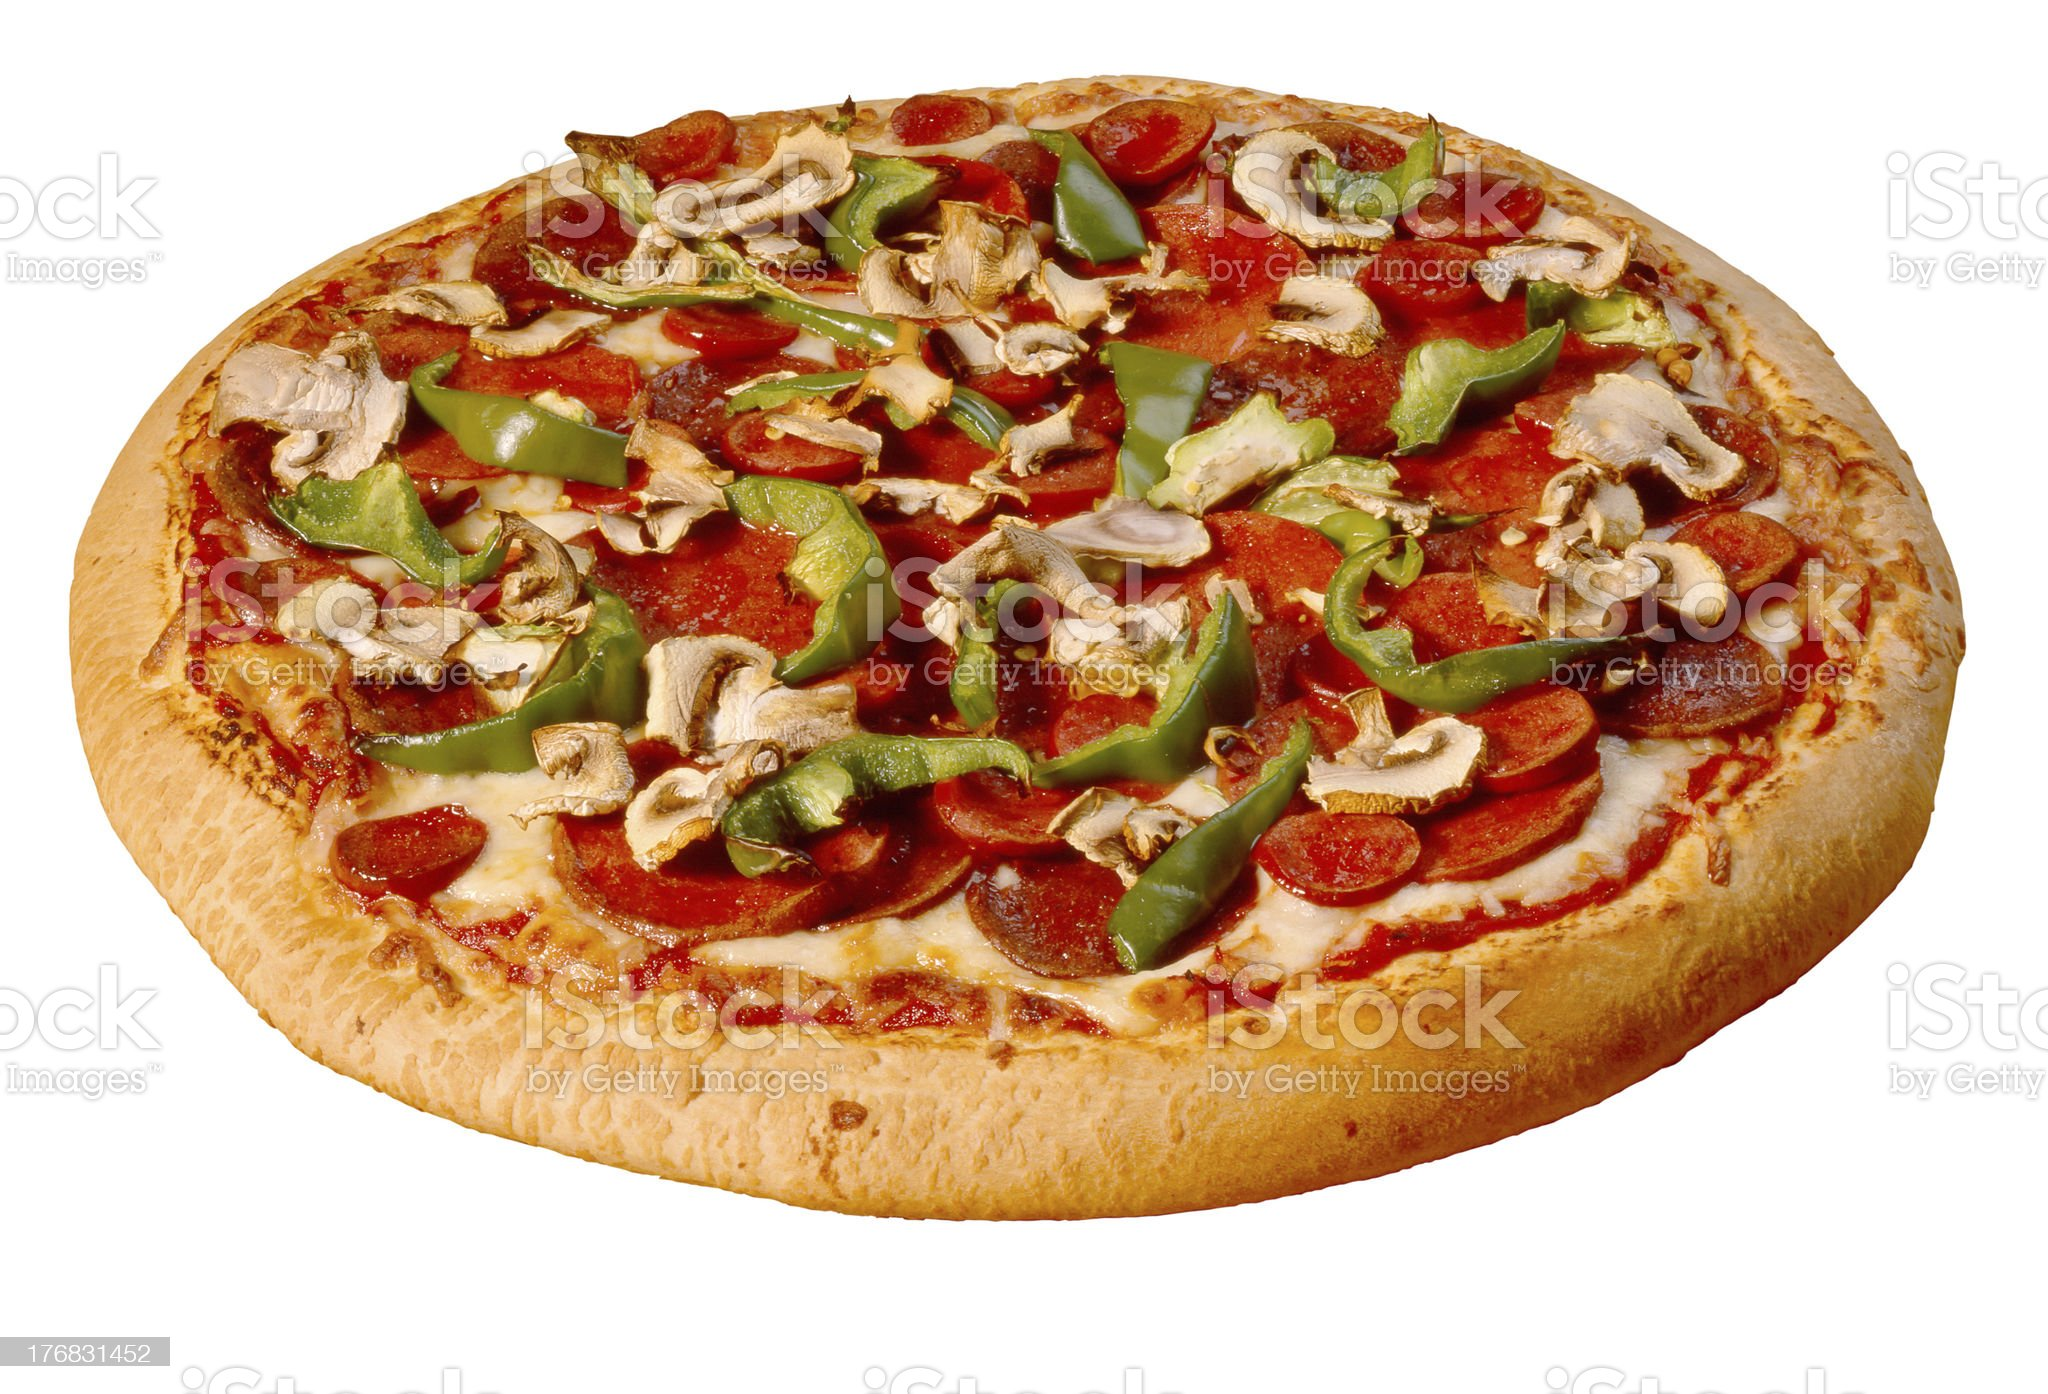 pizza royalty-free stock photo